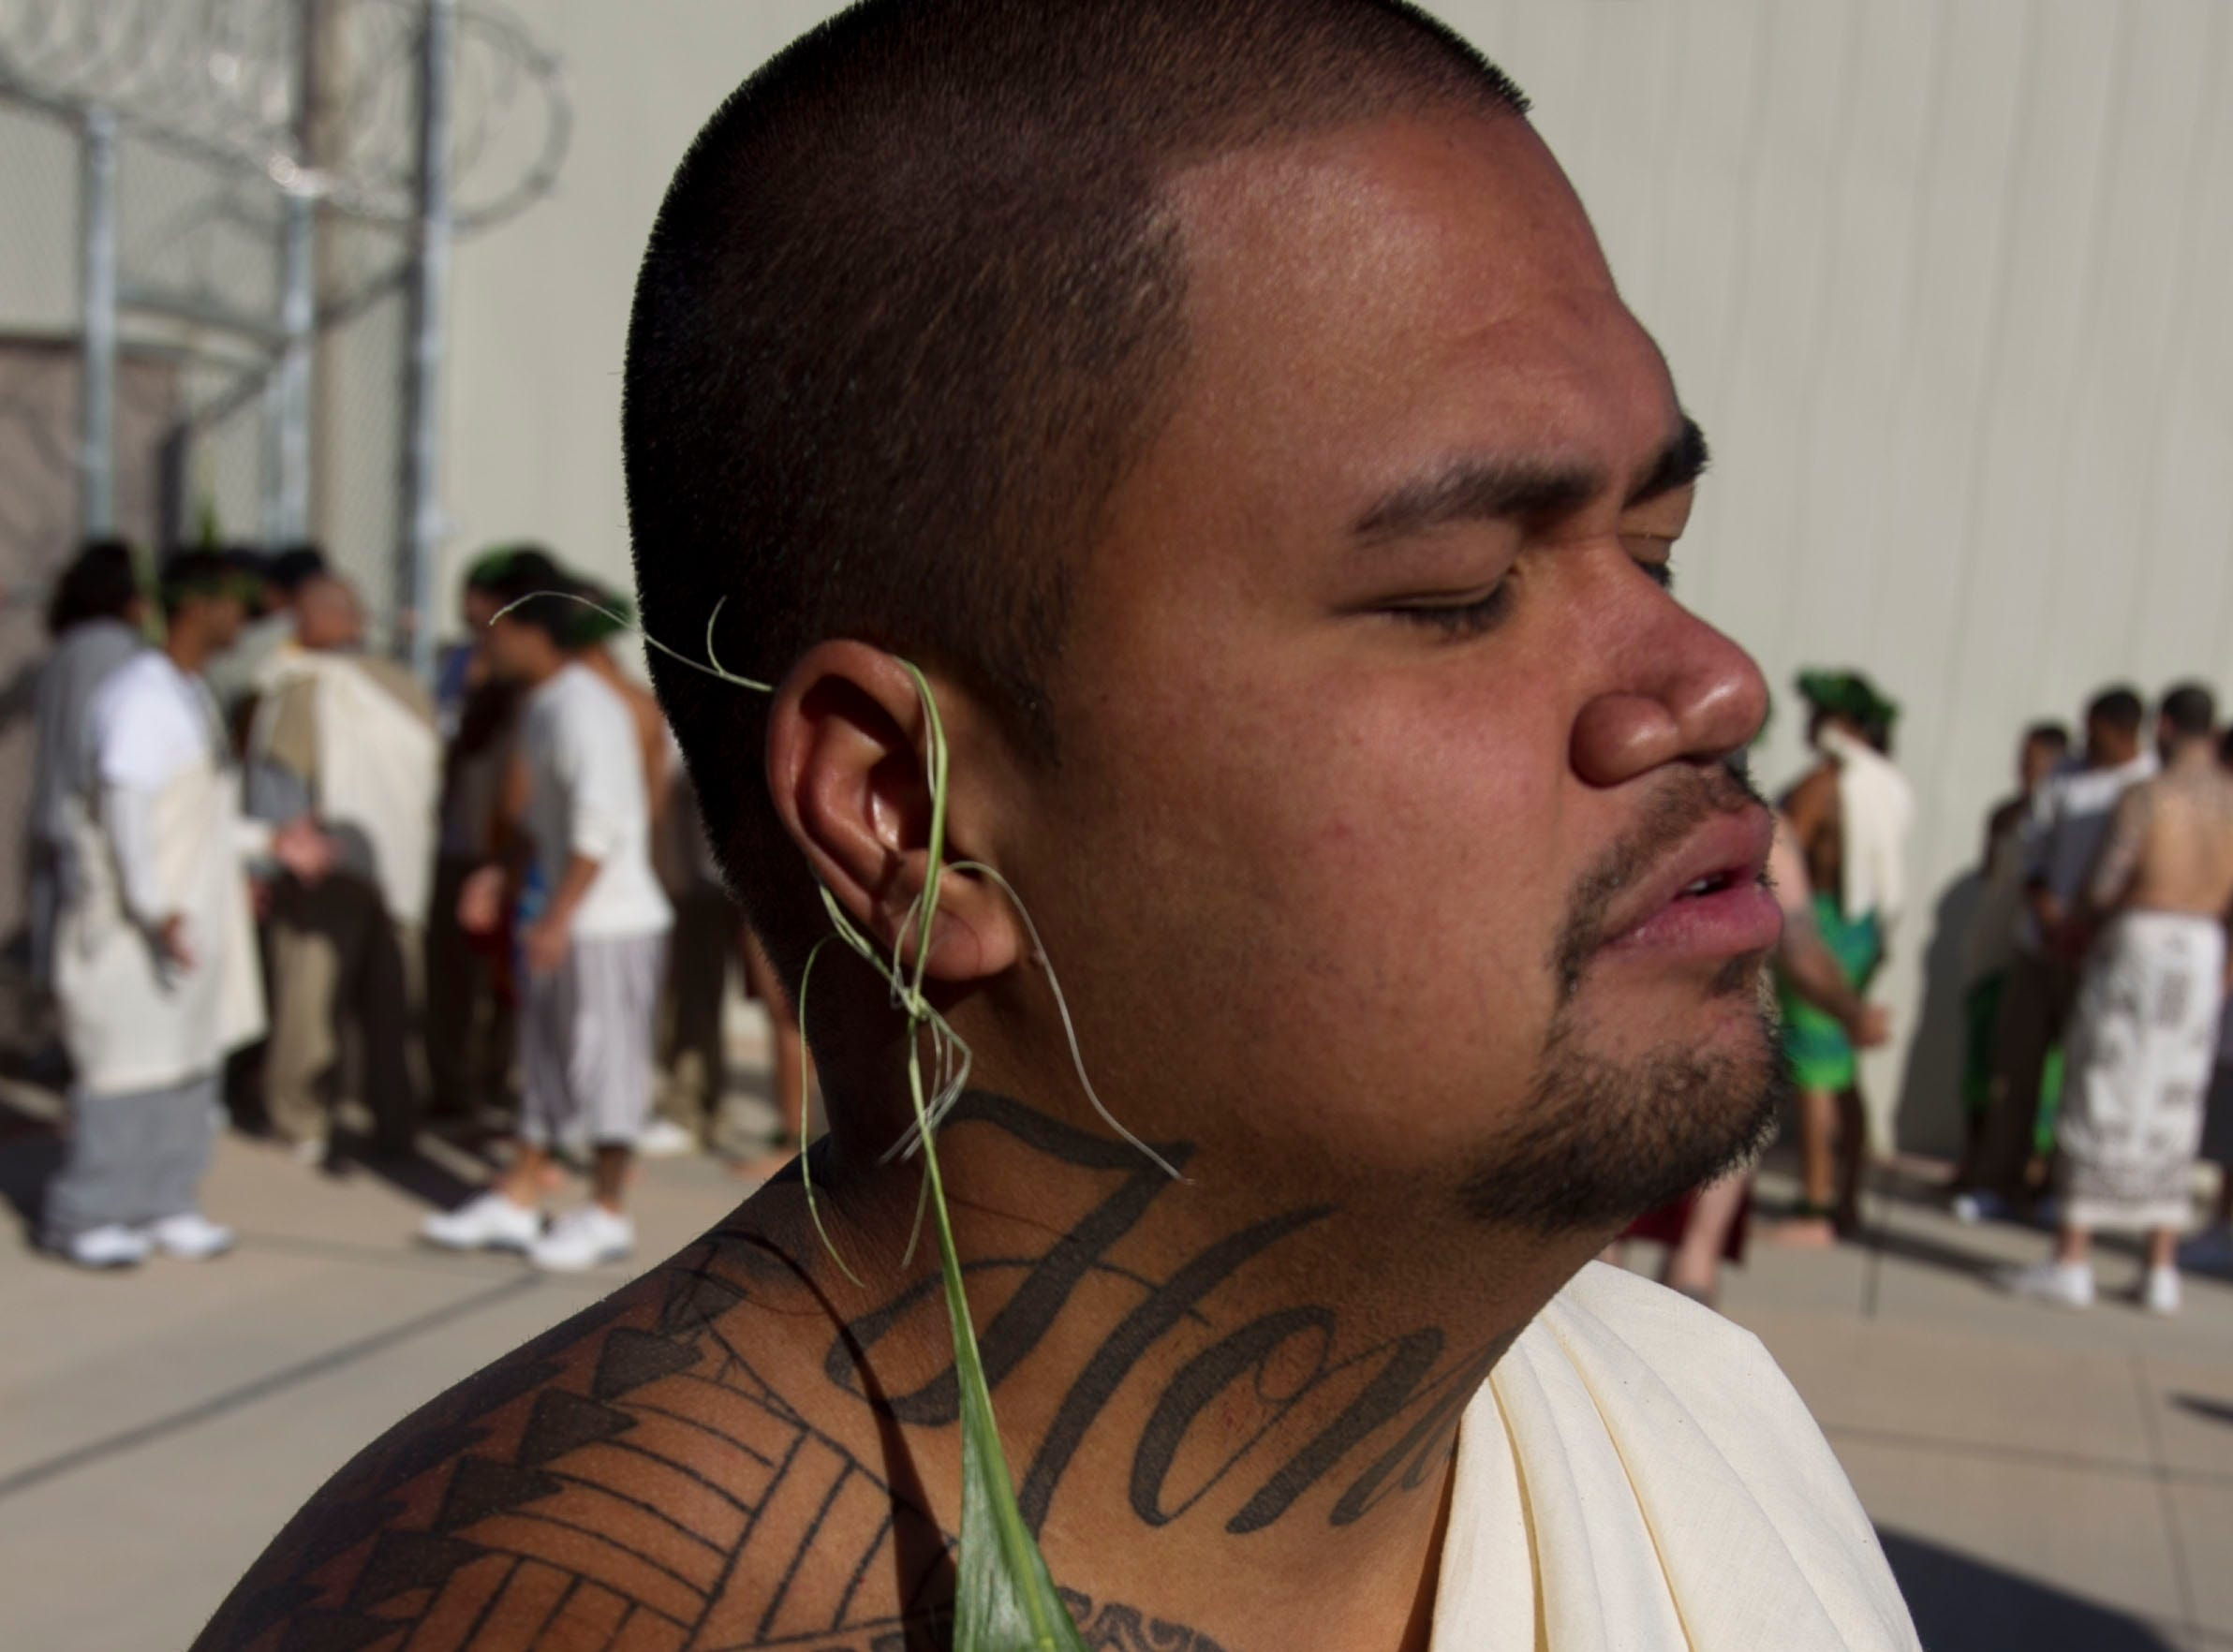 Kelena Neula, a Hawaiian inmate at Saguaro Correctional Center in Eloy, prays for the beginning of the Makahiki season of harvest during sunrise service on Oct. 9, 2011.